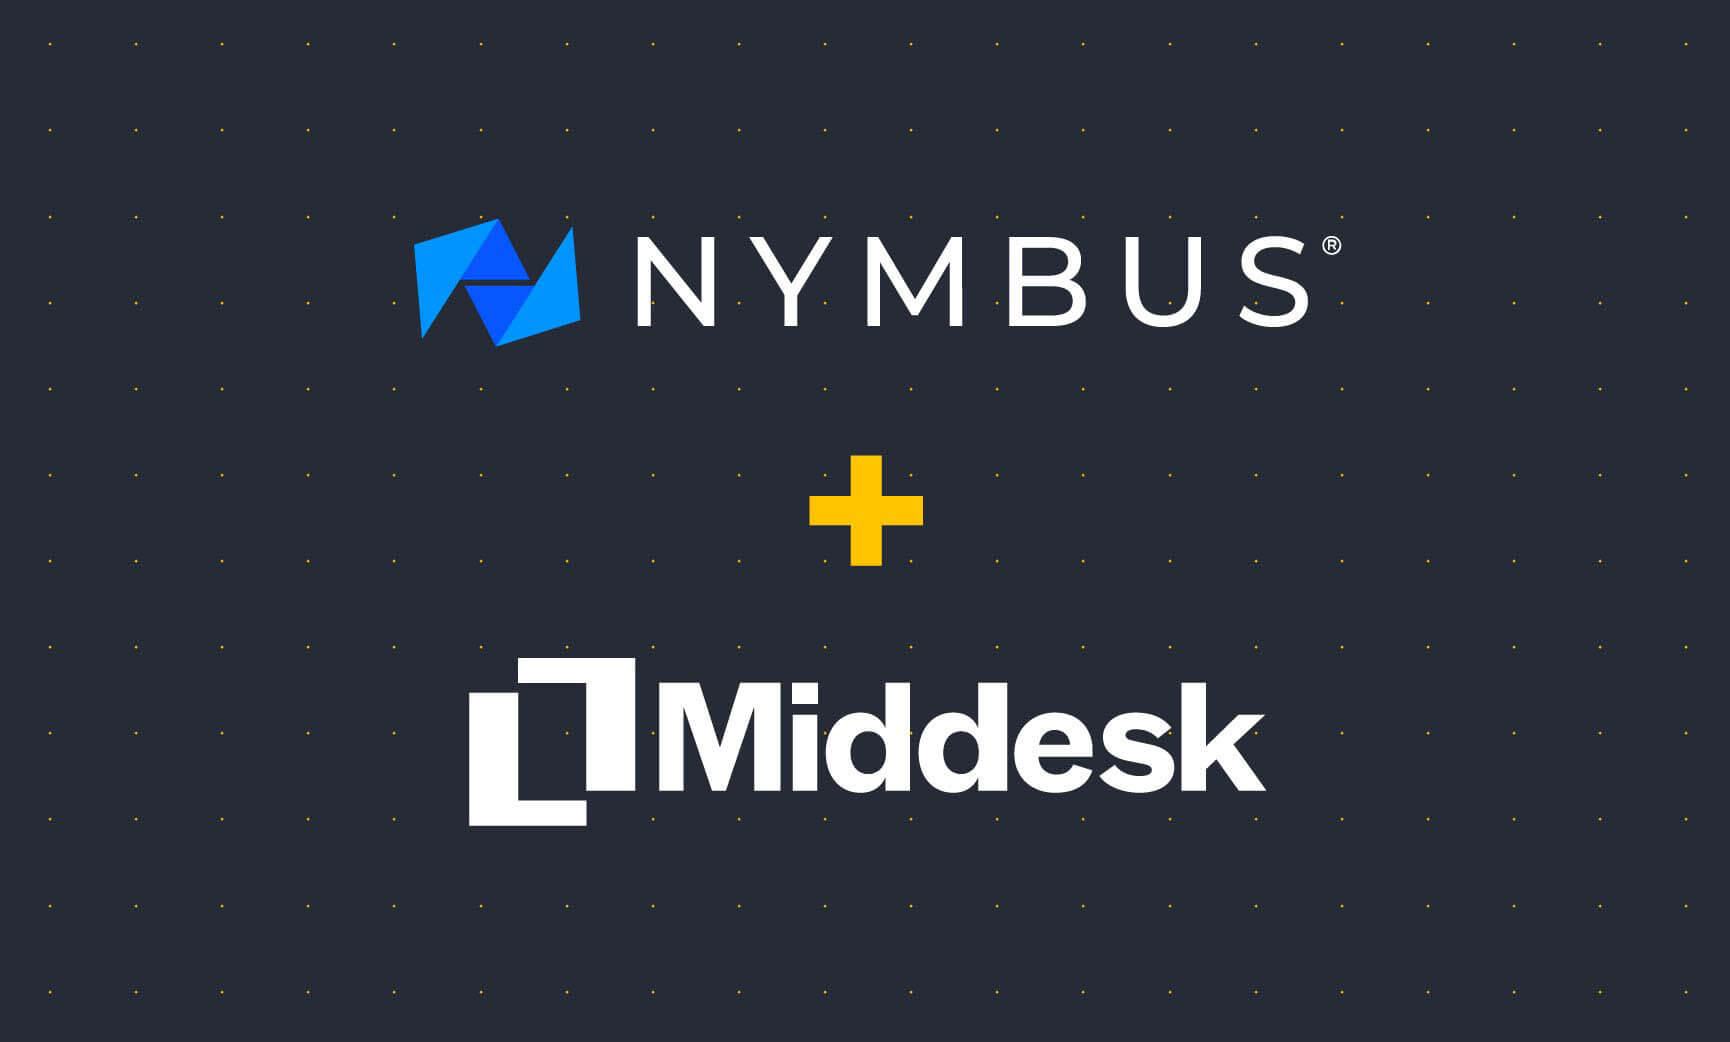 NYMBUS Partners With Middesk to Accelerate Digital Onboarding for Financial Institutions